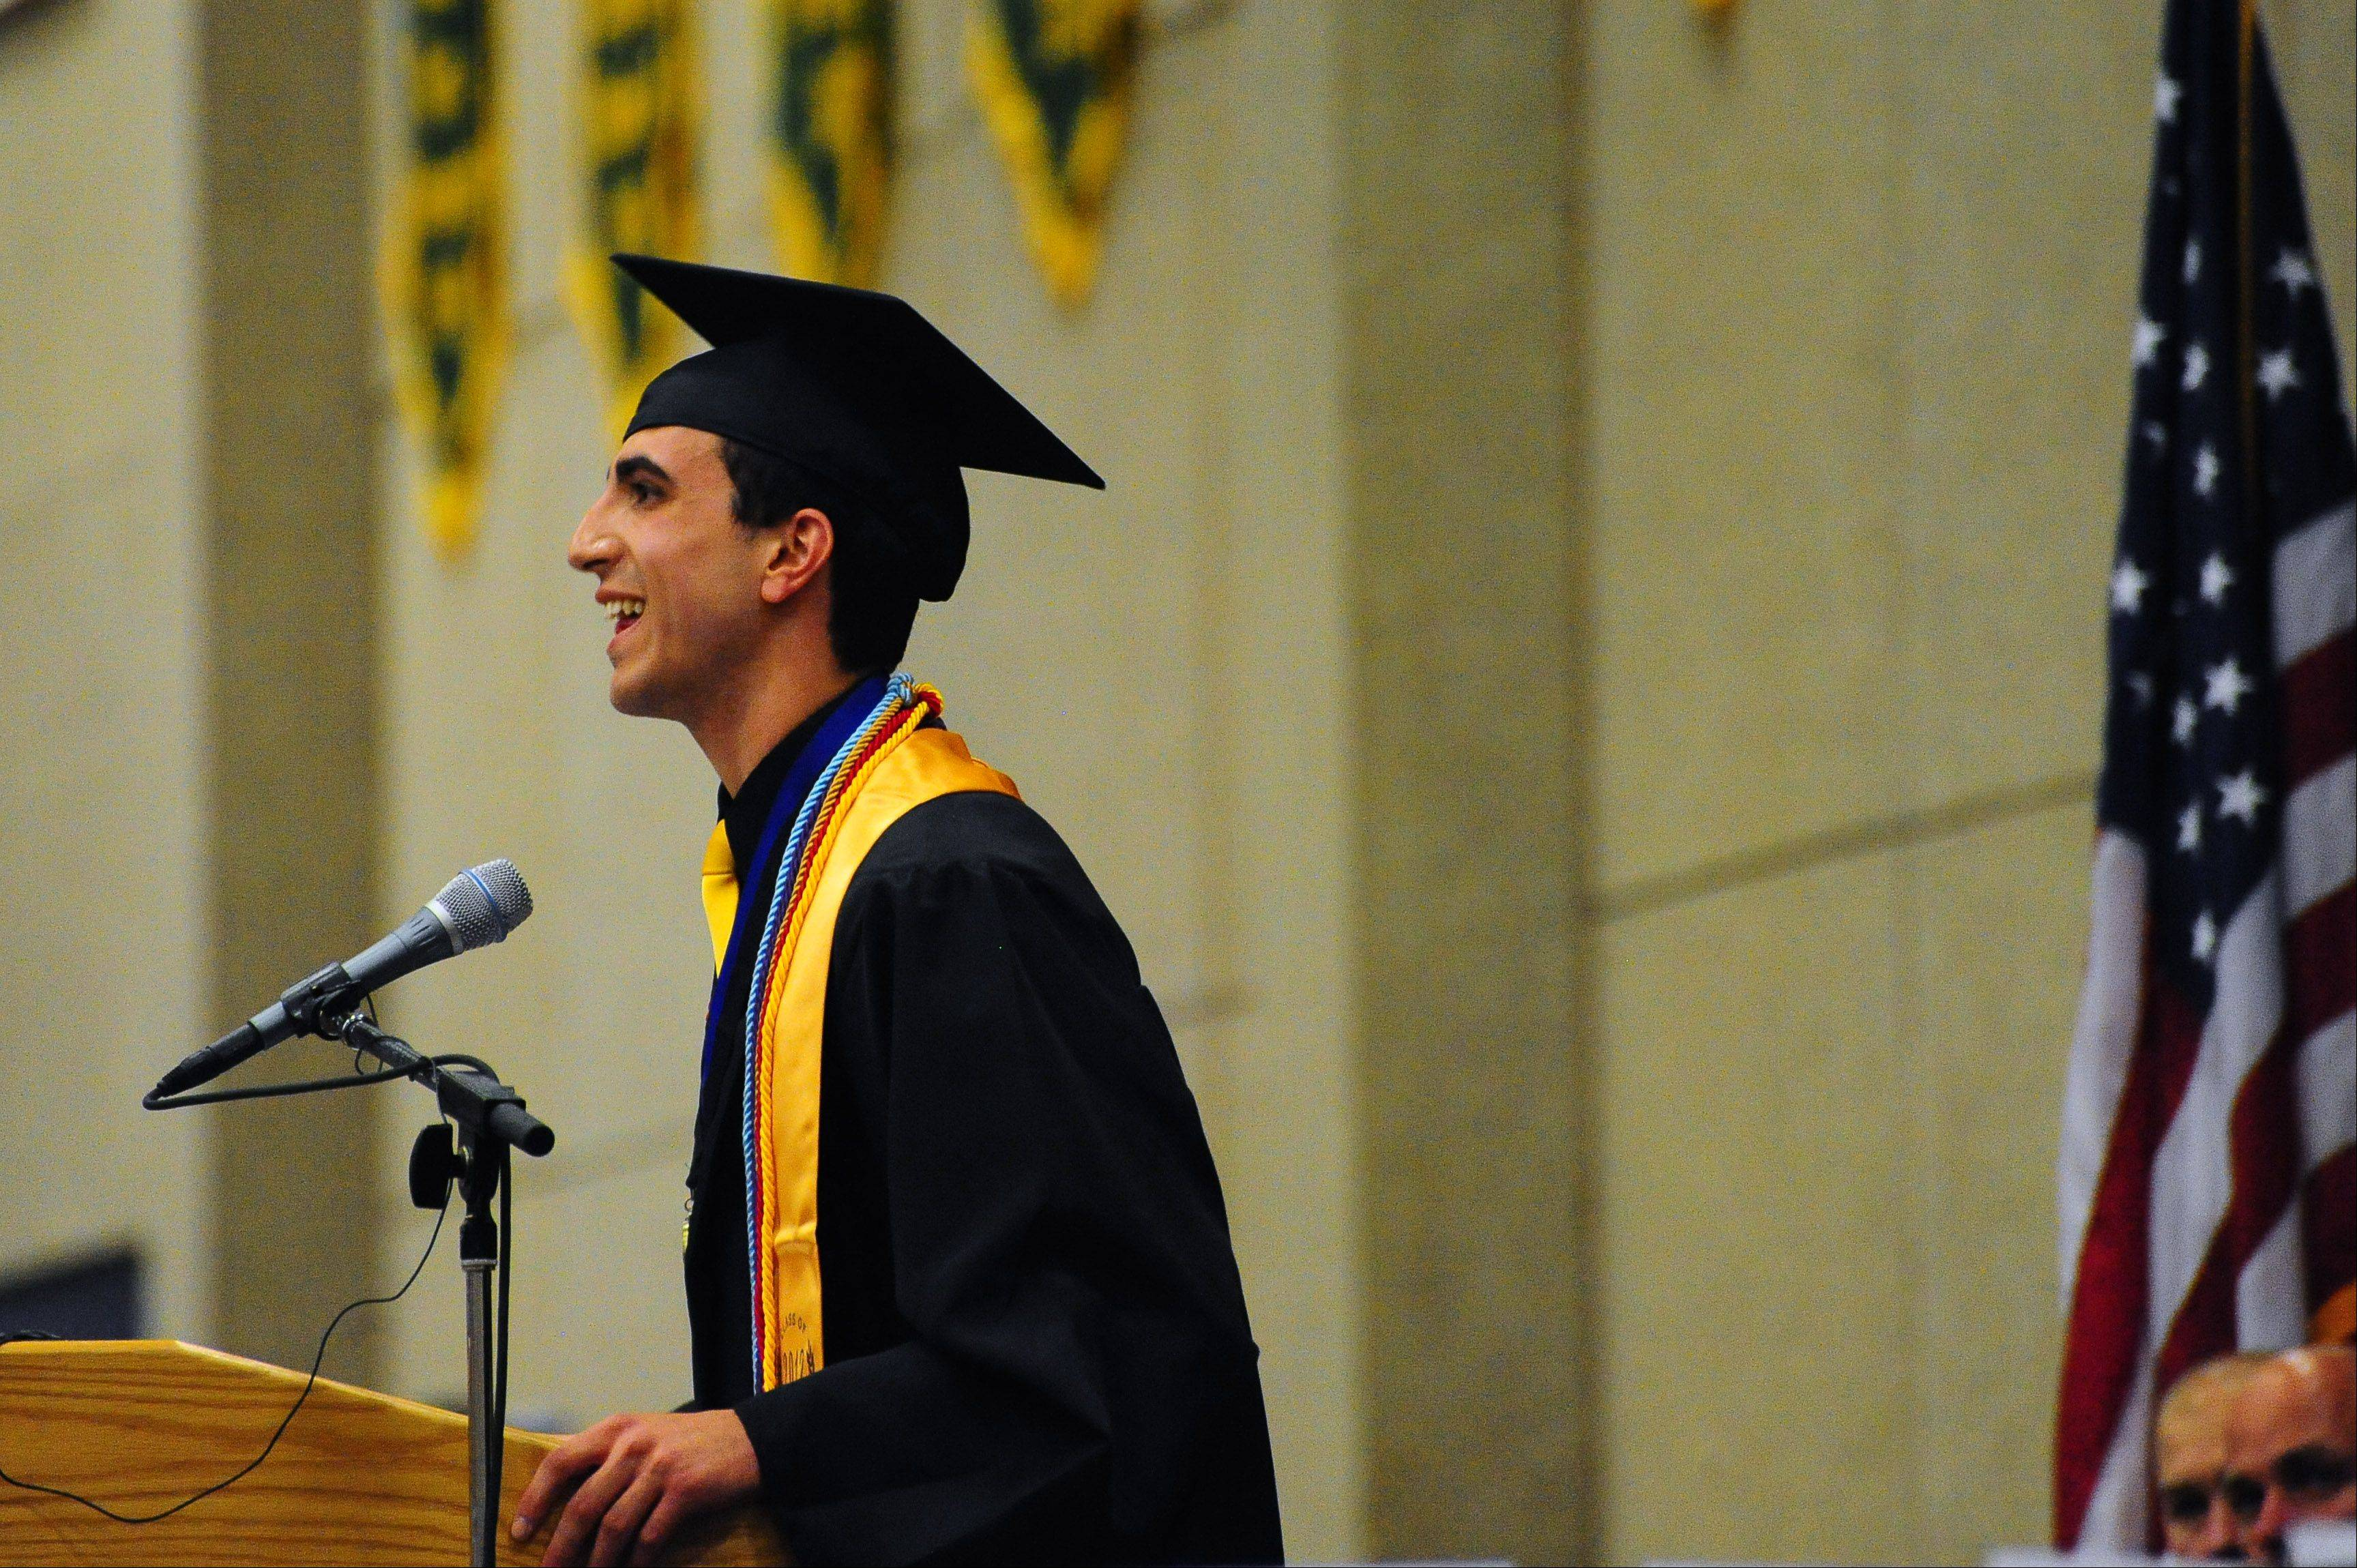 Michael Fagan delivers the commencement address to his fellow graduates during the 2012 Glenbard North High School commencement ceremony held at the College of DuPage on Sunday.